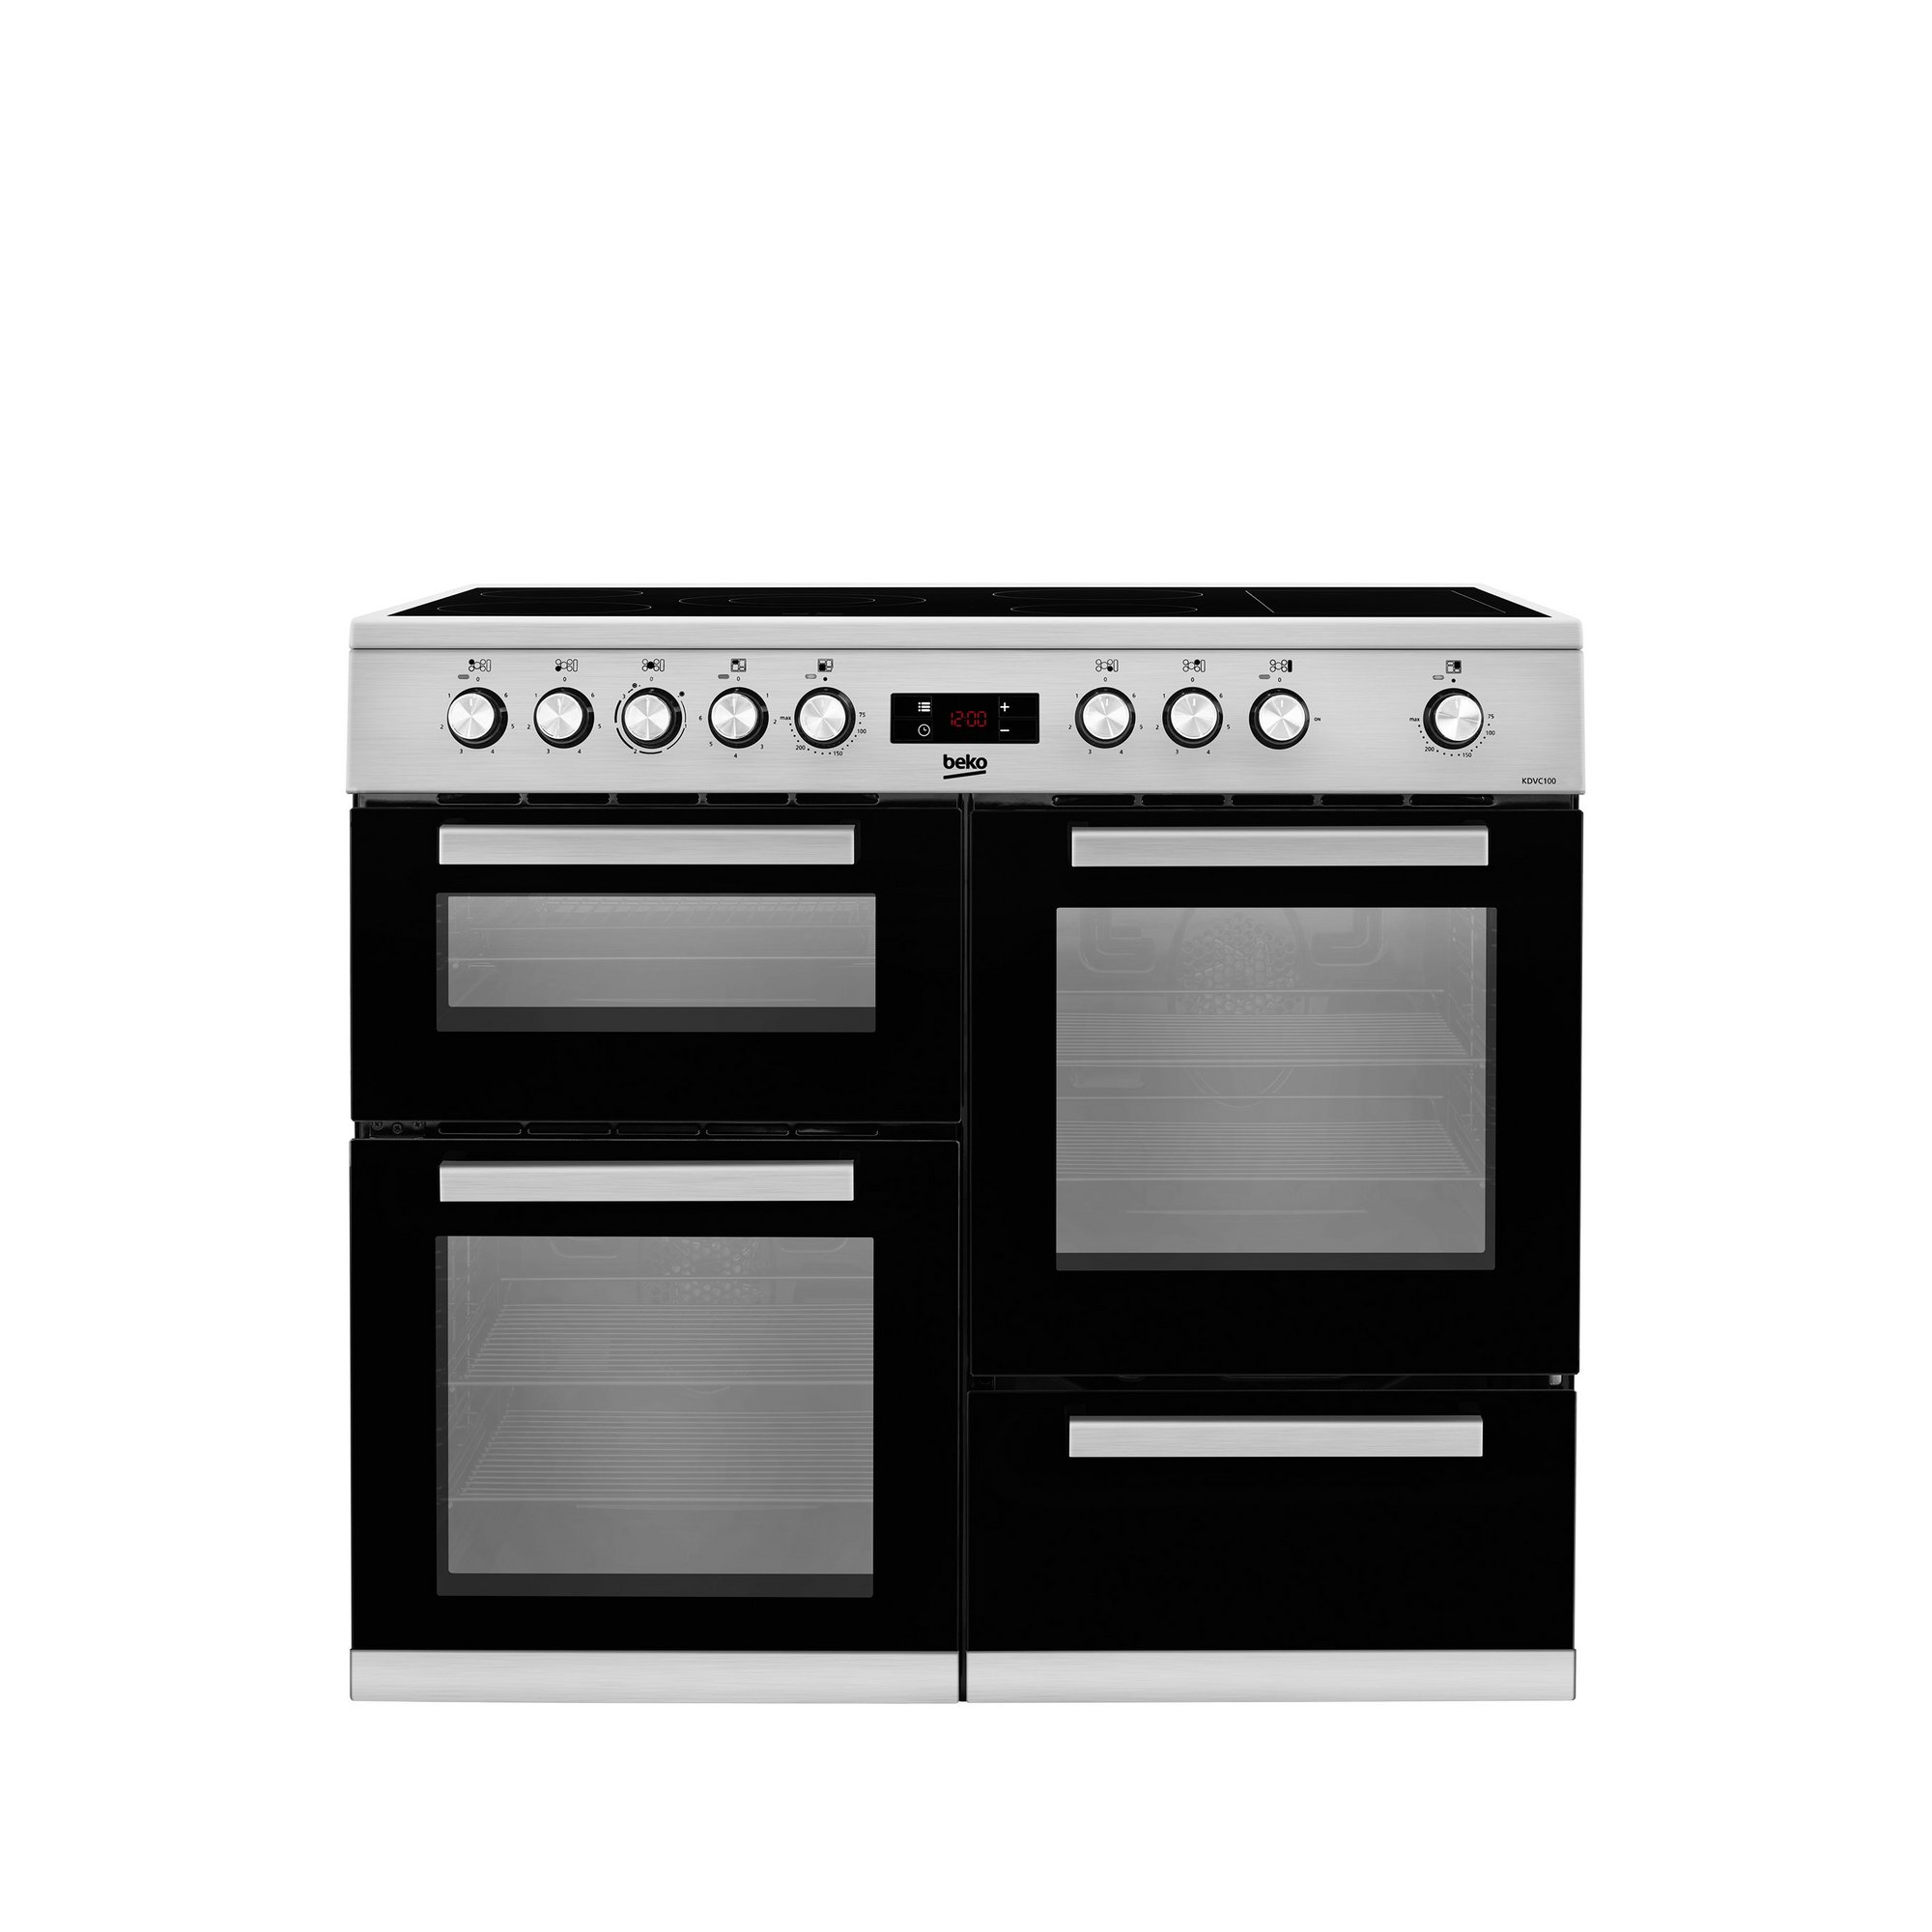 Image of Beko 100cm Electric Double Oven Range Cooker